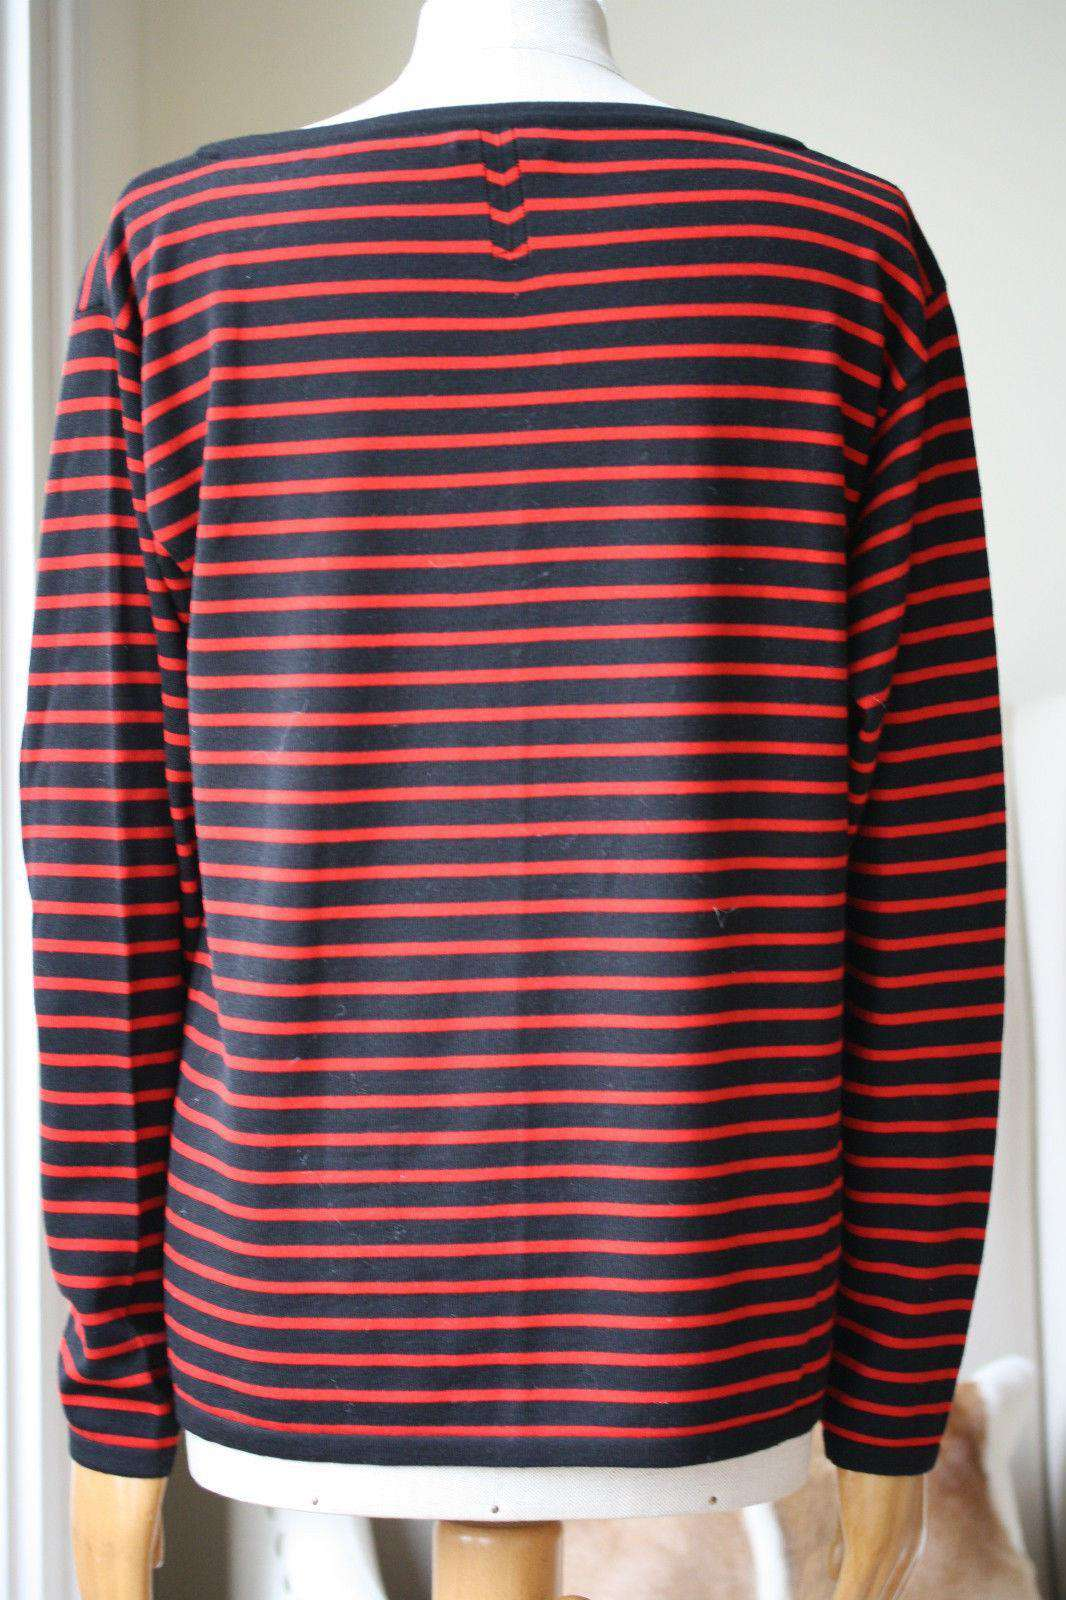 SAINT LAURENT BRETON STRIPE FINE KNIT SILK TOP MEDIUM